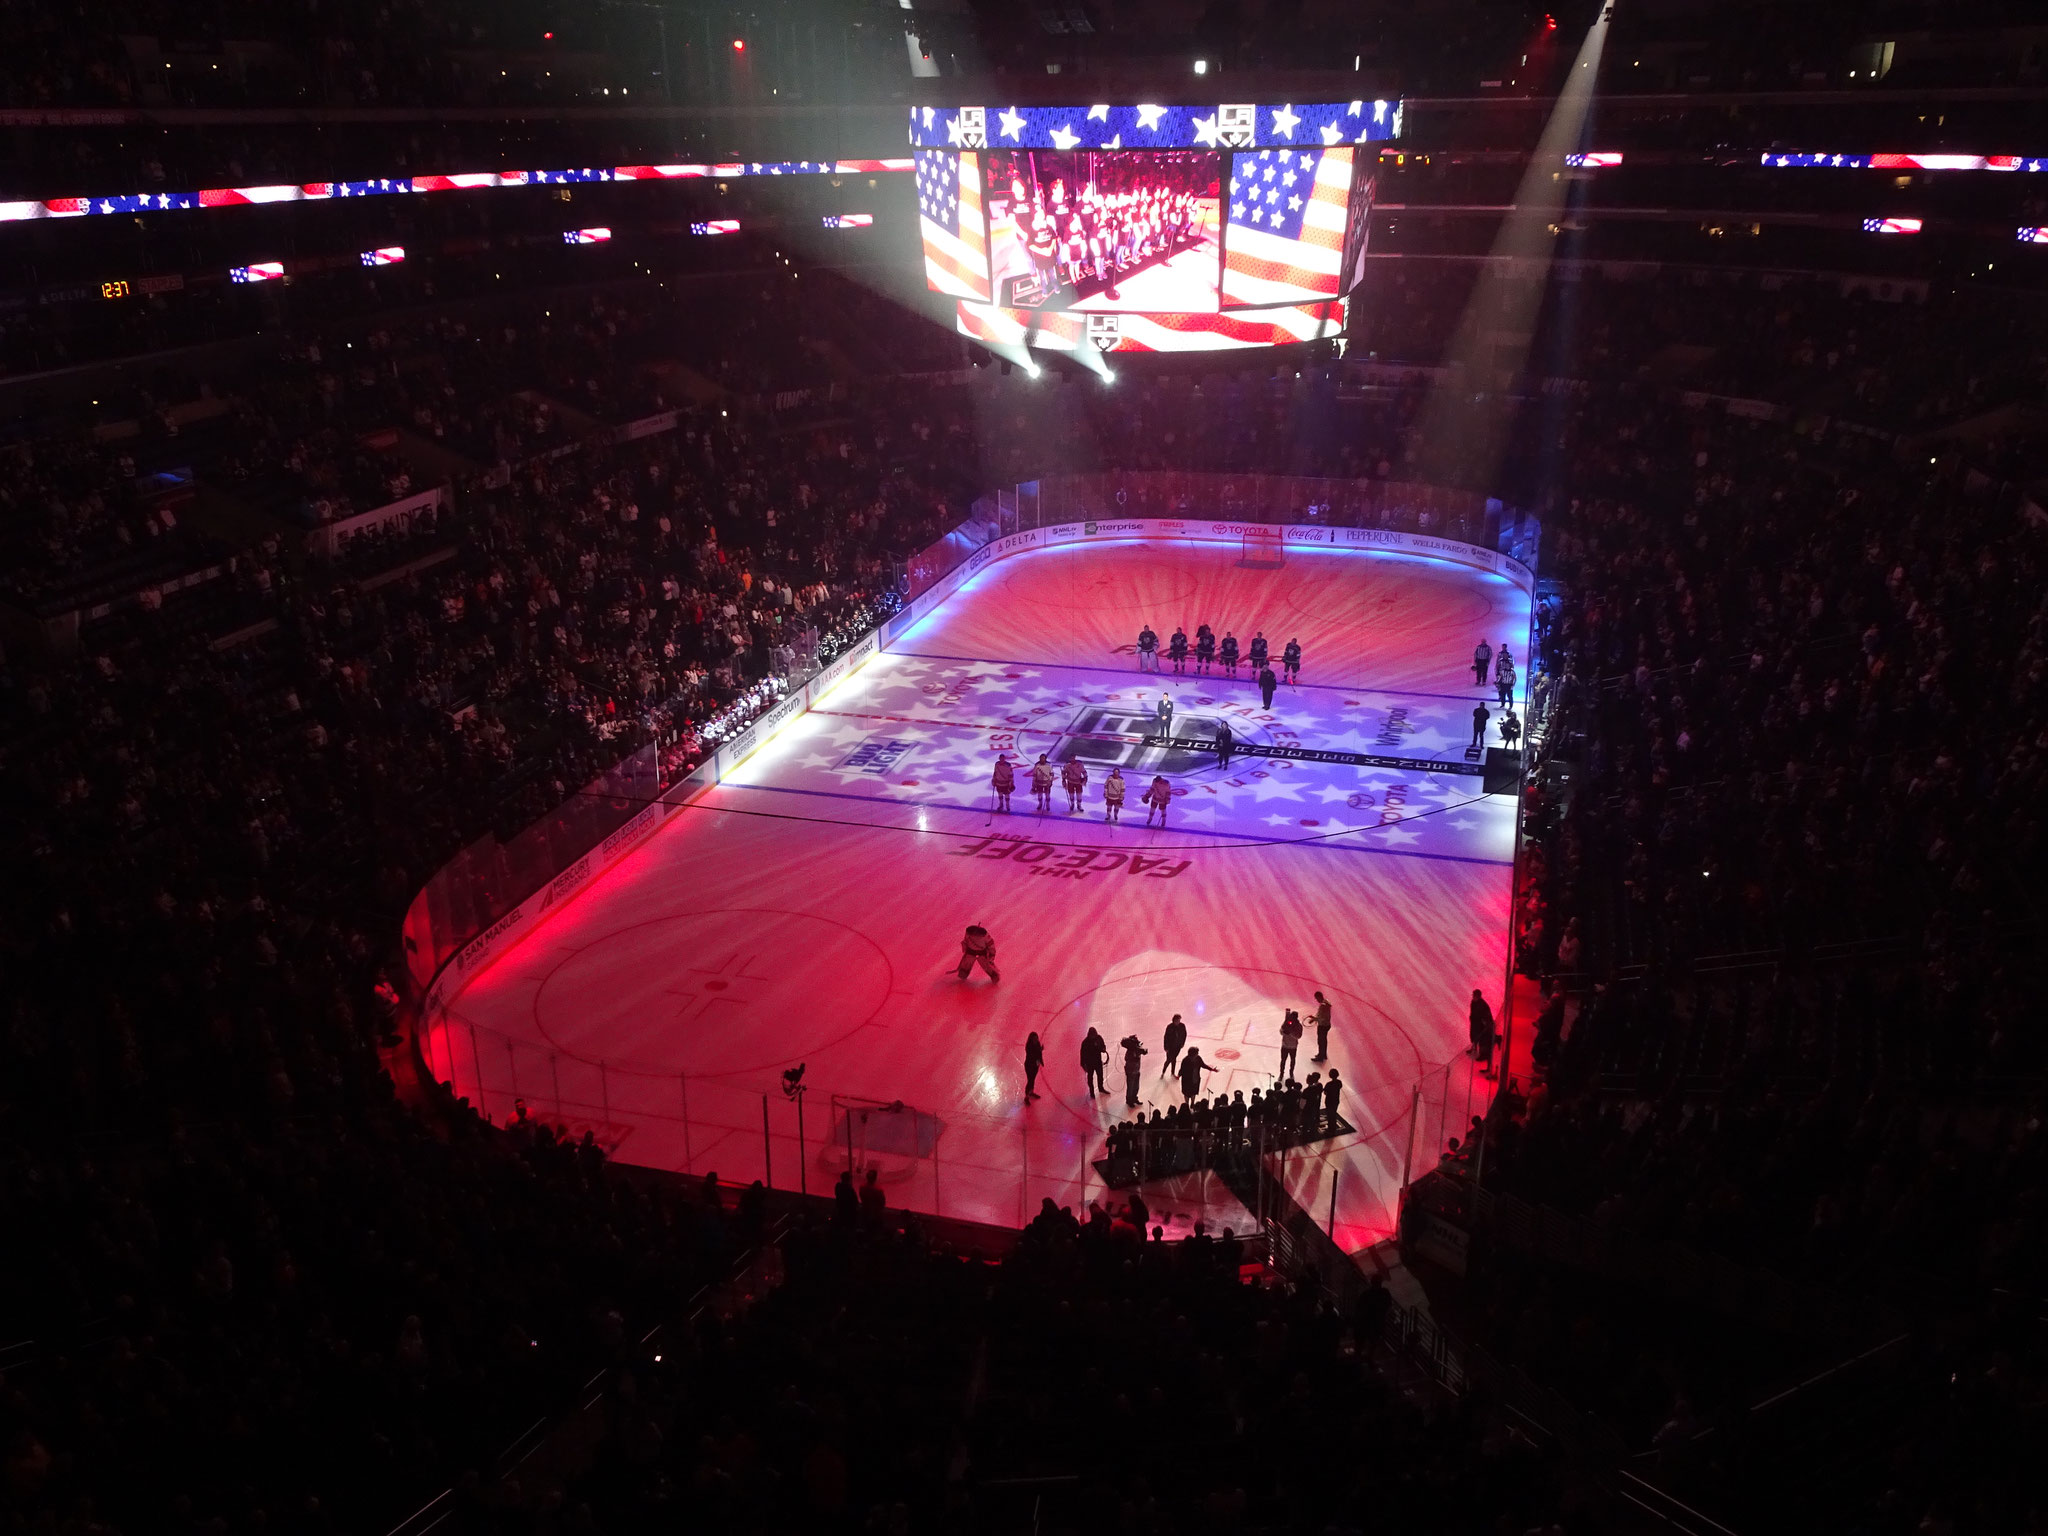 Los Angeles Kings vs New York Rangers